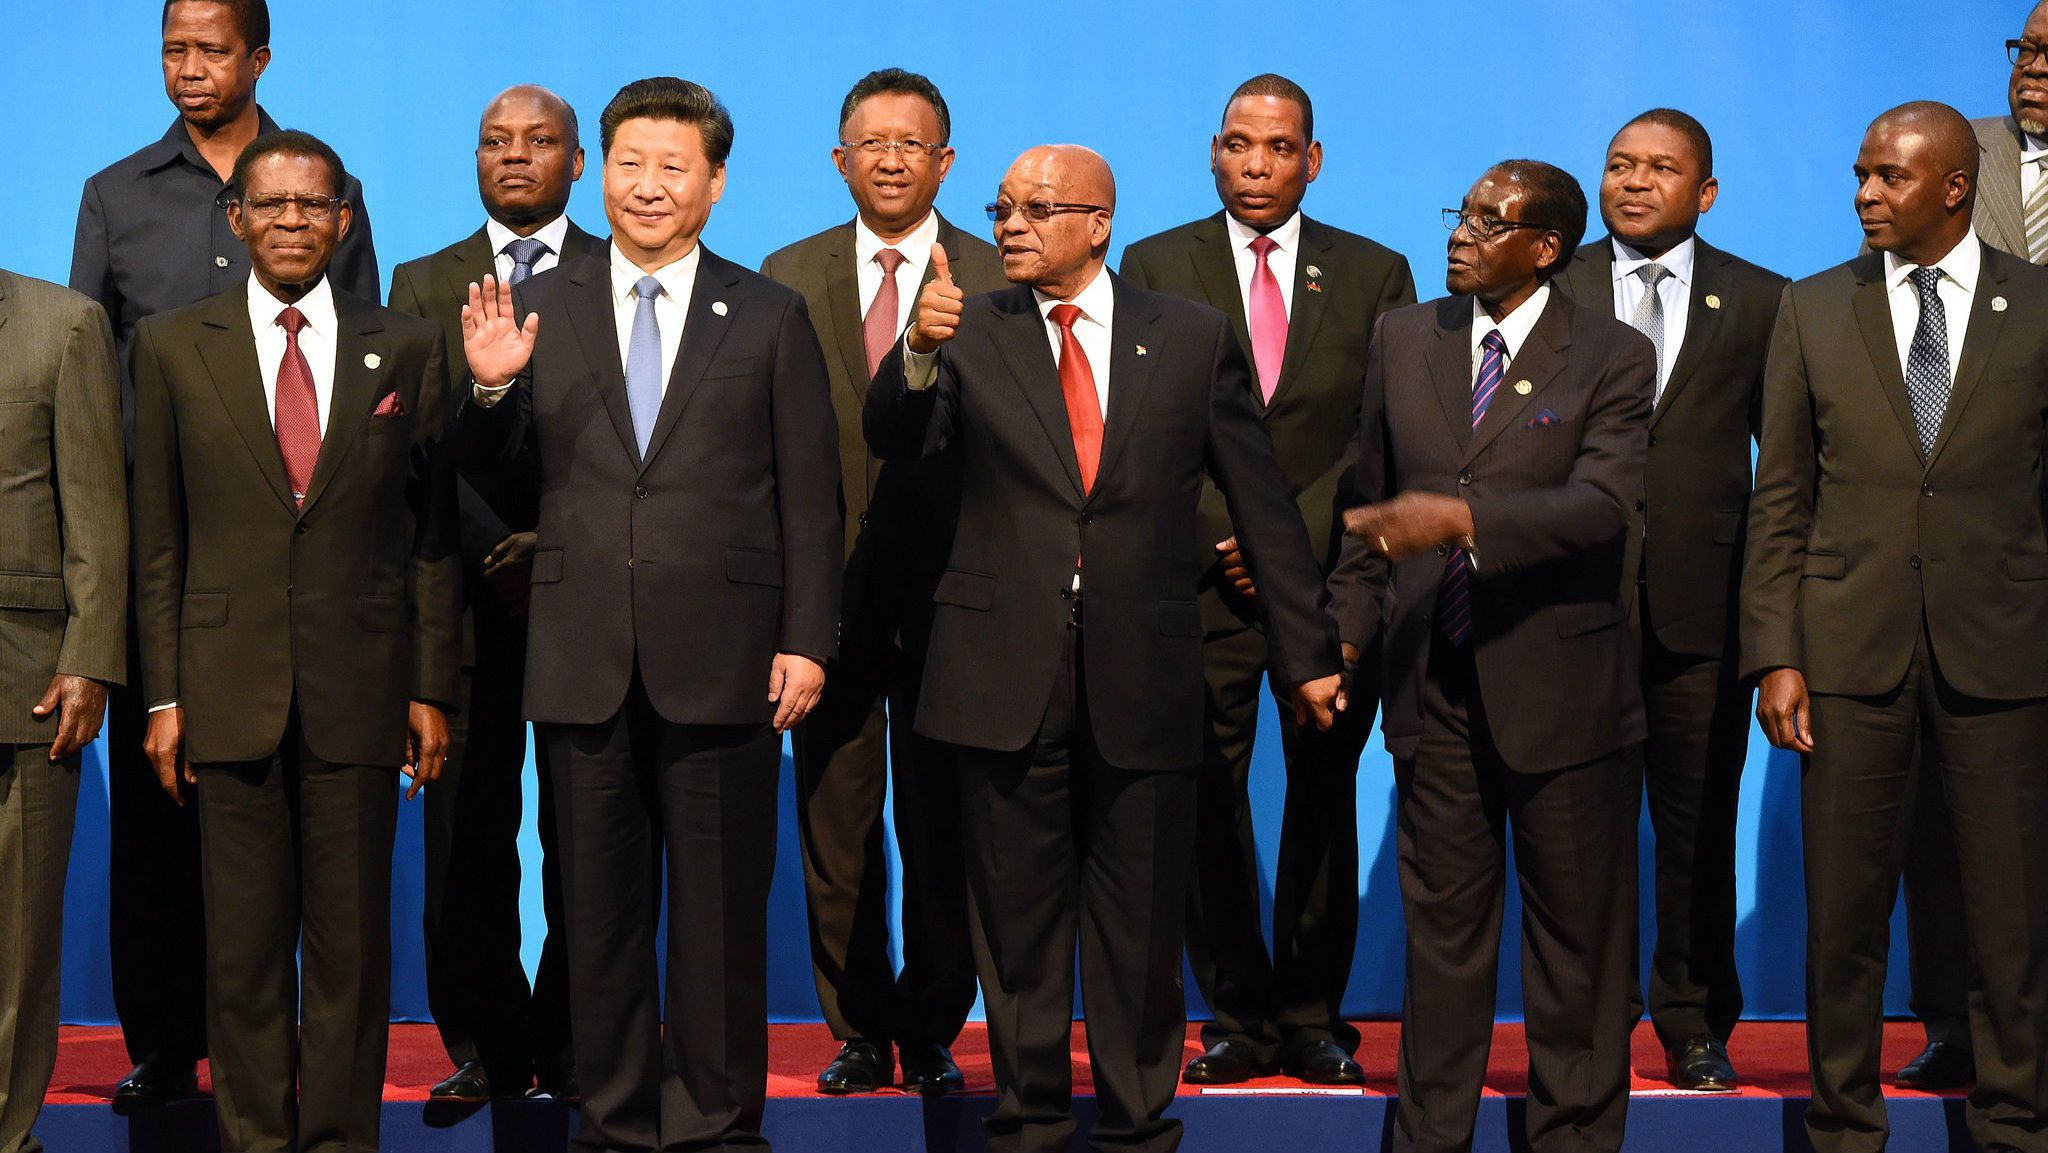 Beijing is cultivating the next generation of African elites by training them in China